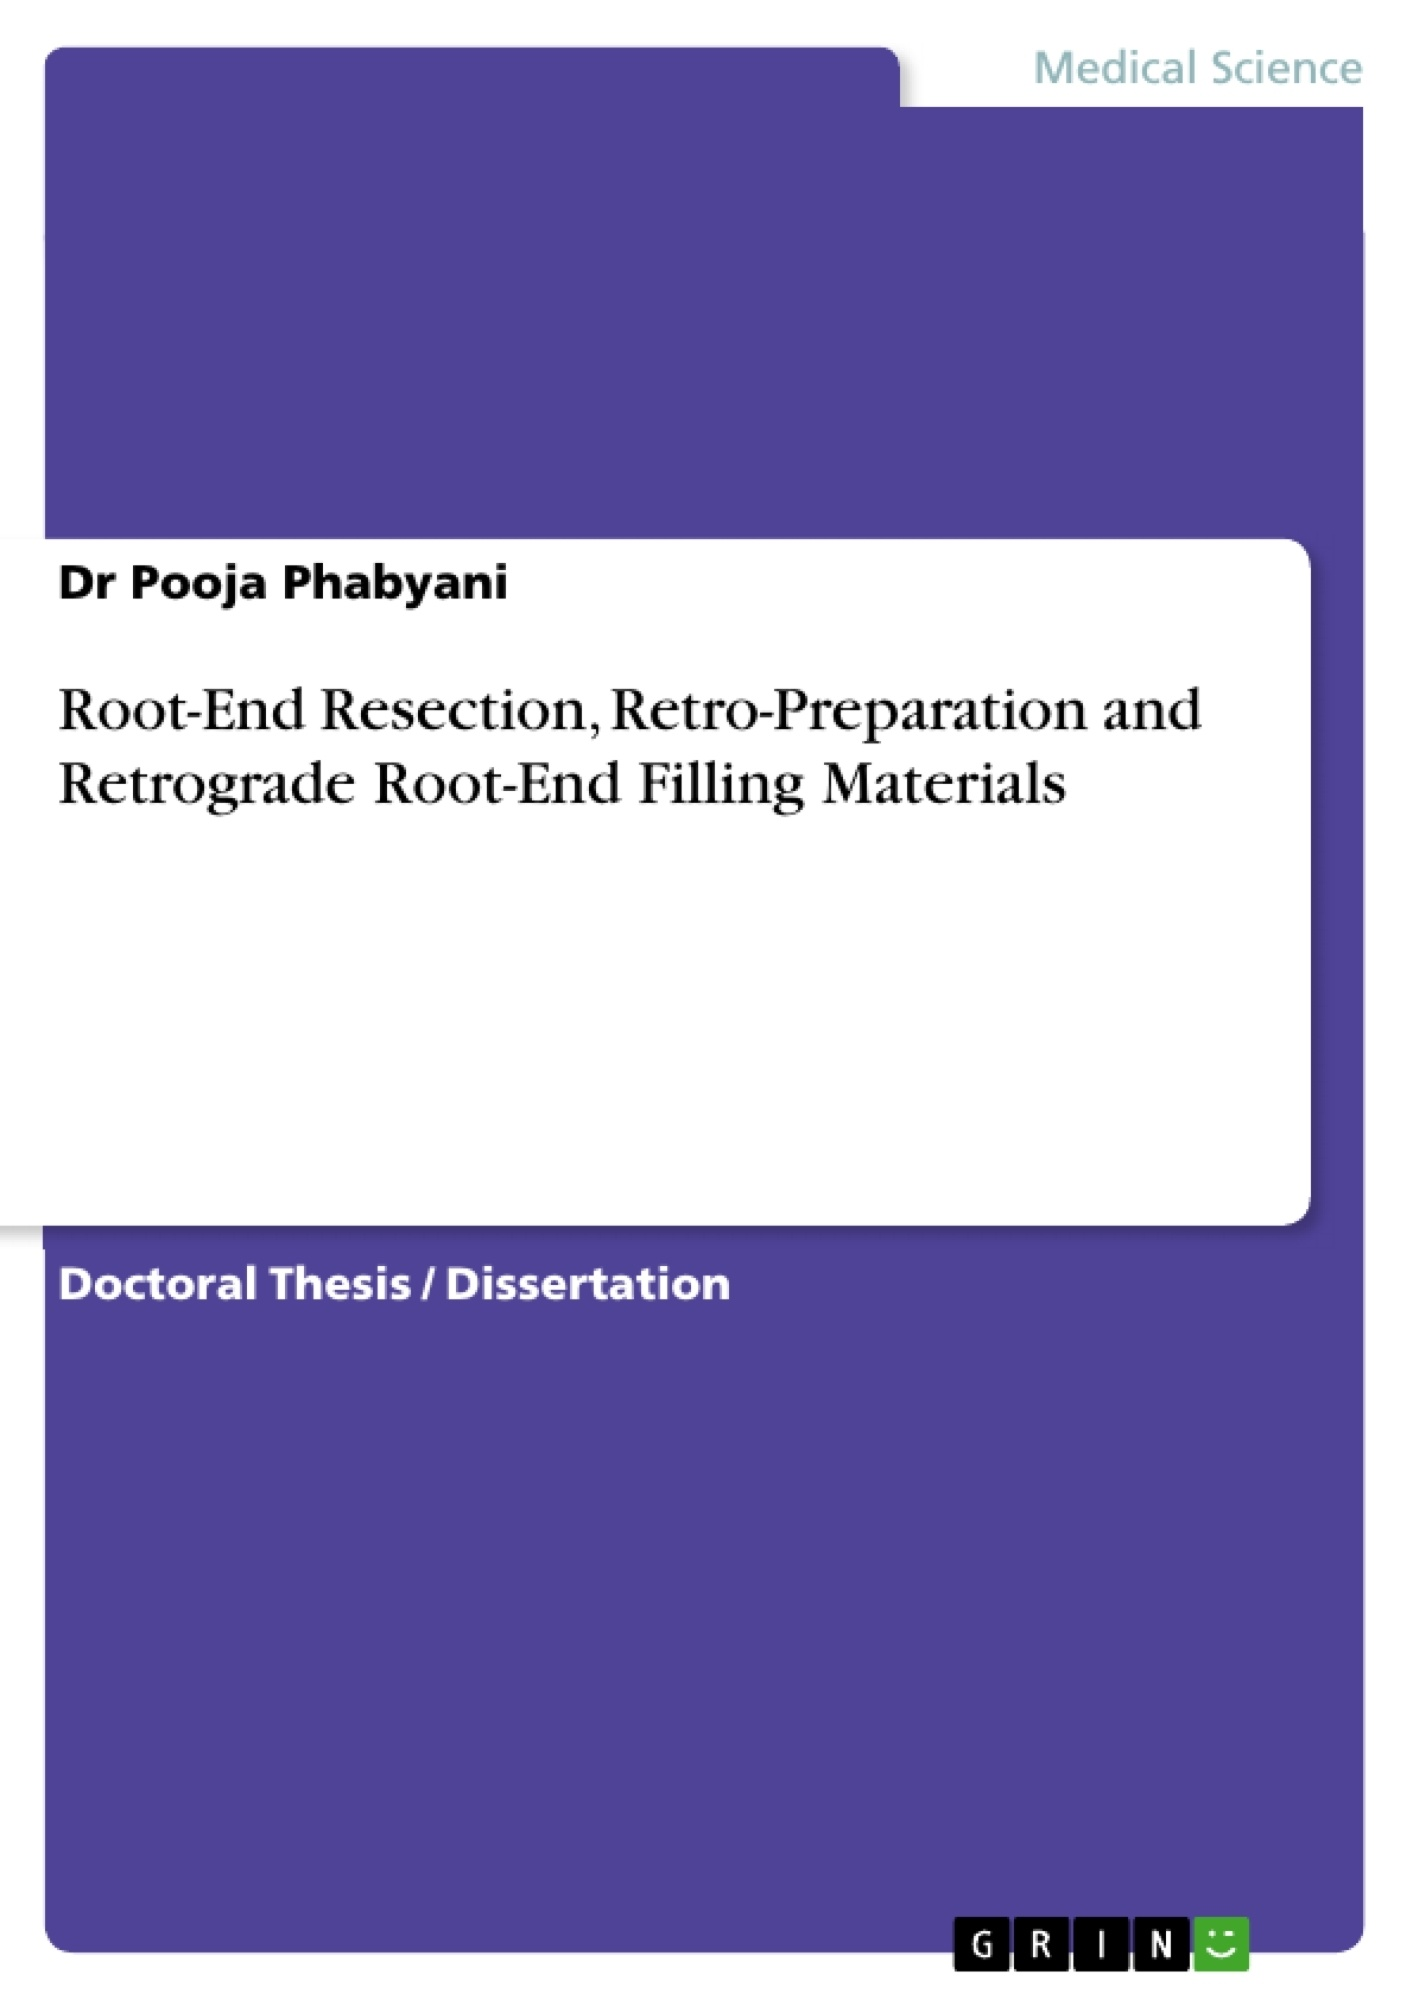 Title: Root-End Resection, Retro-Preparation and Retrograde Root-End Filling Materials